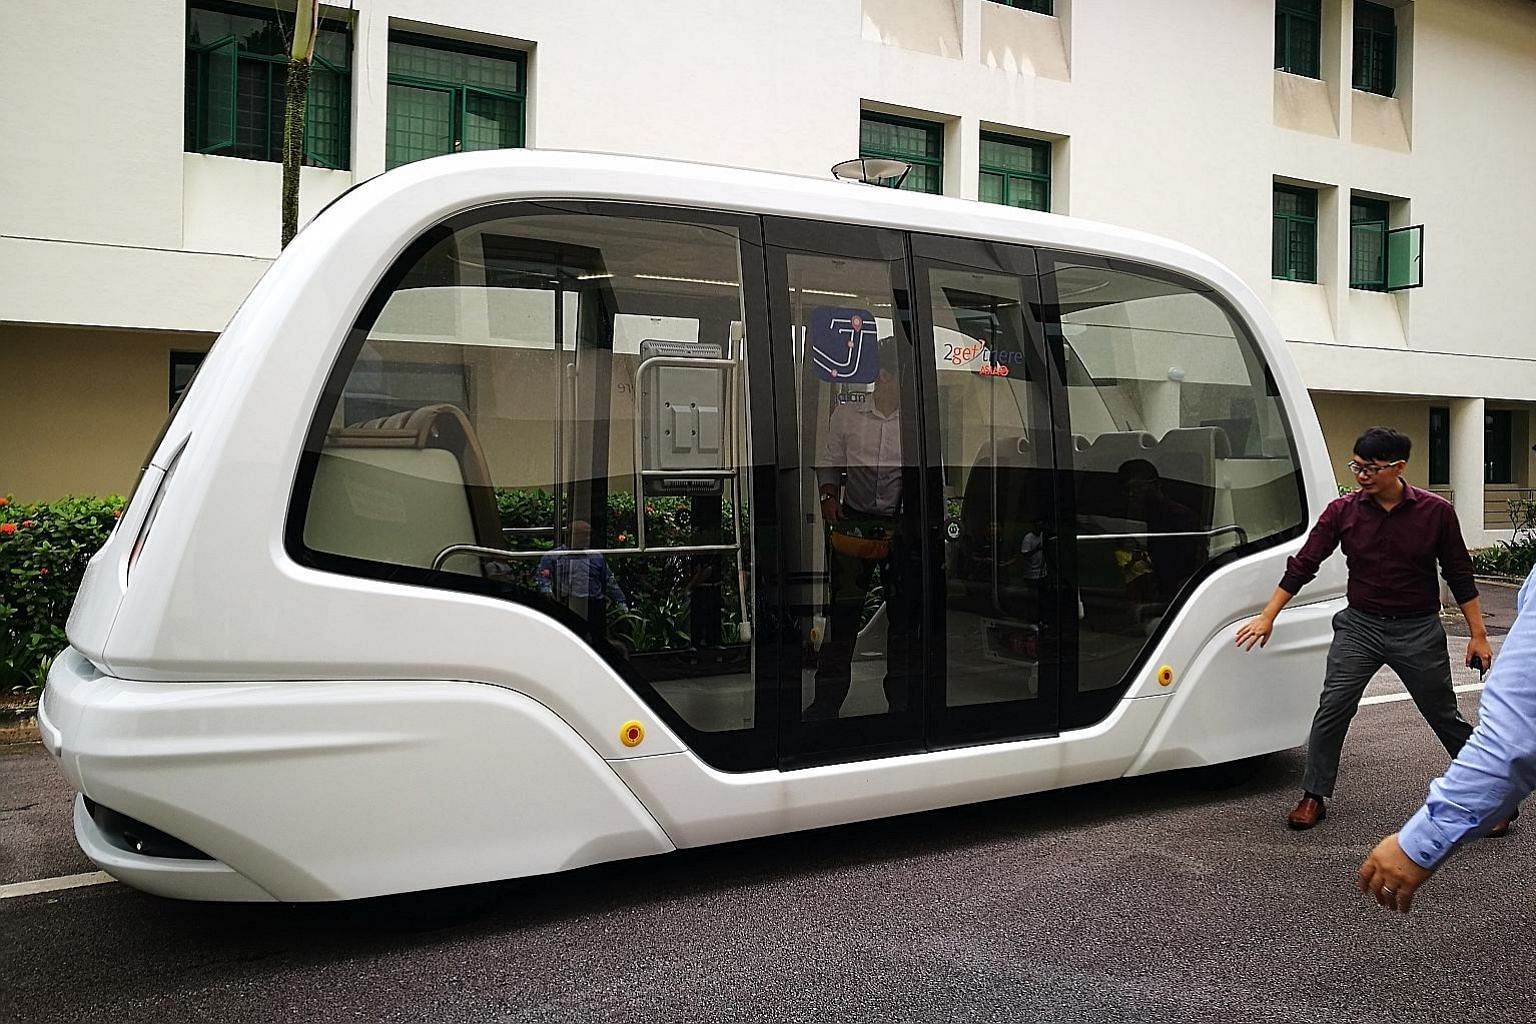 With the new 5G networks, Singapore hopes to be among the first to develop industrial applications such as driverless buses, autonomous excavators and delivery drones.